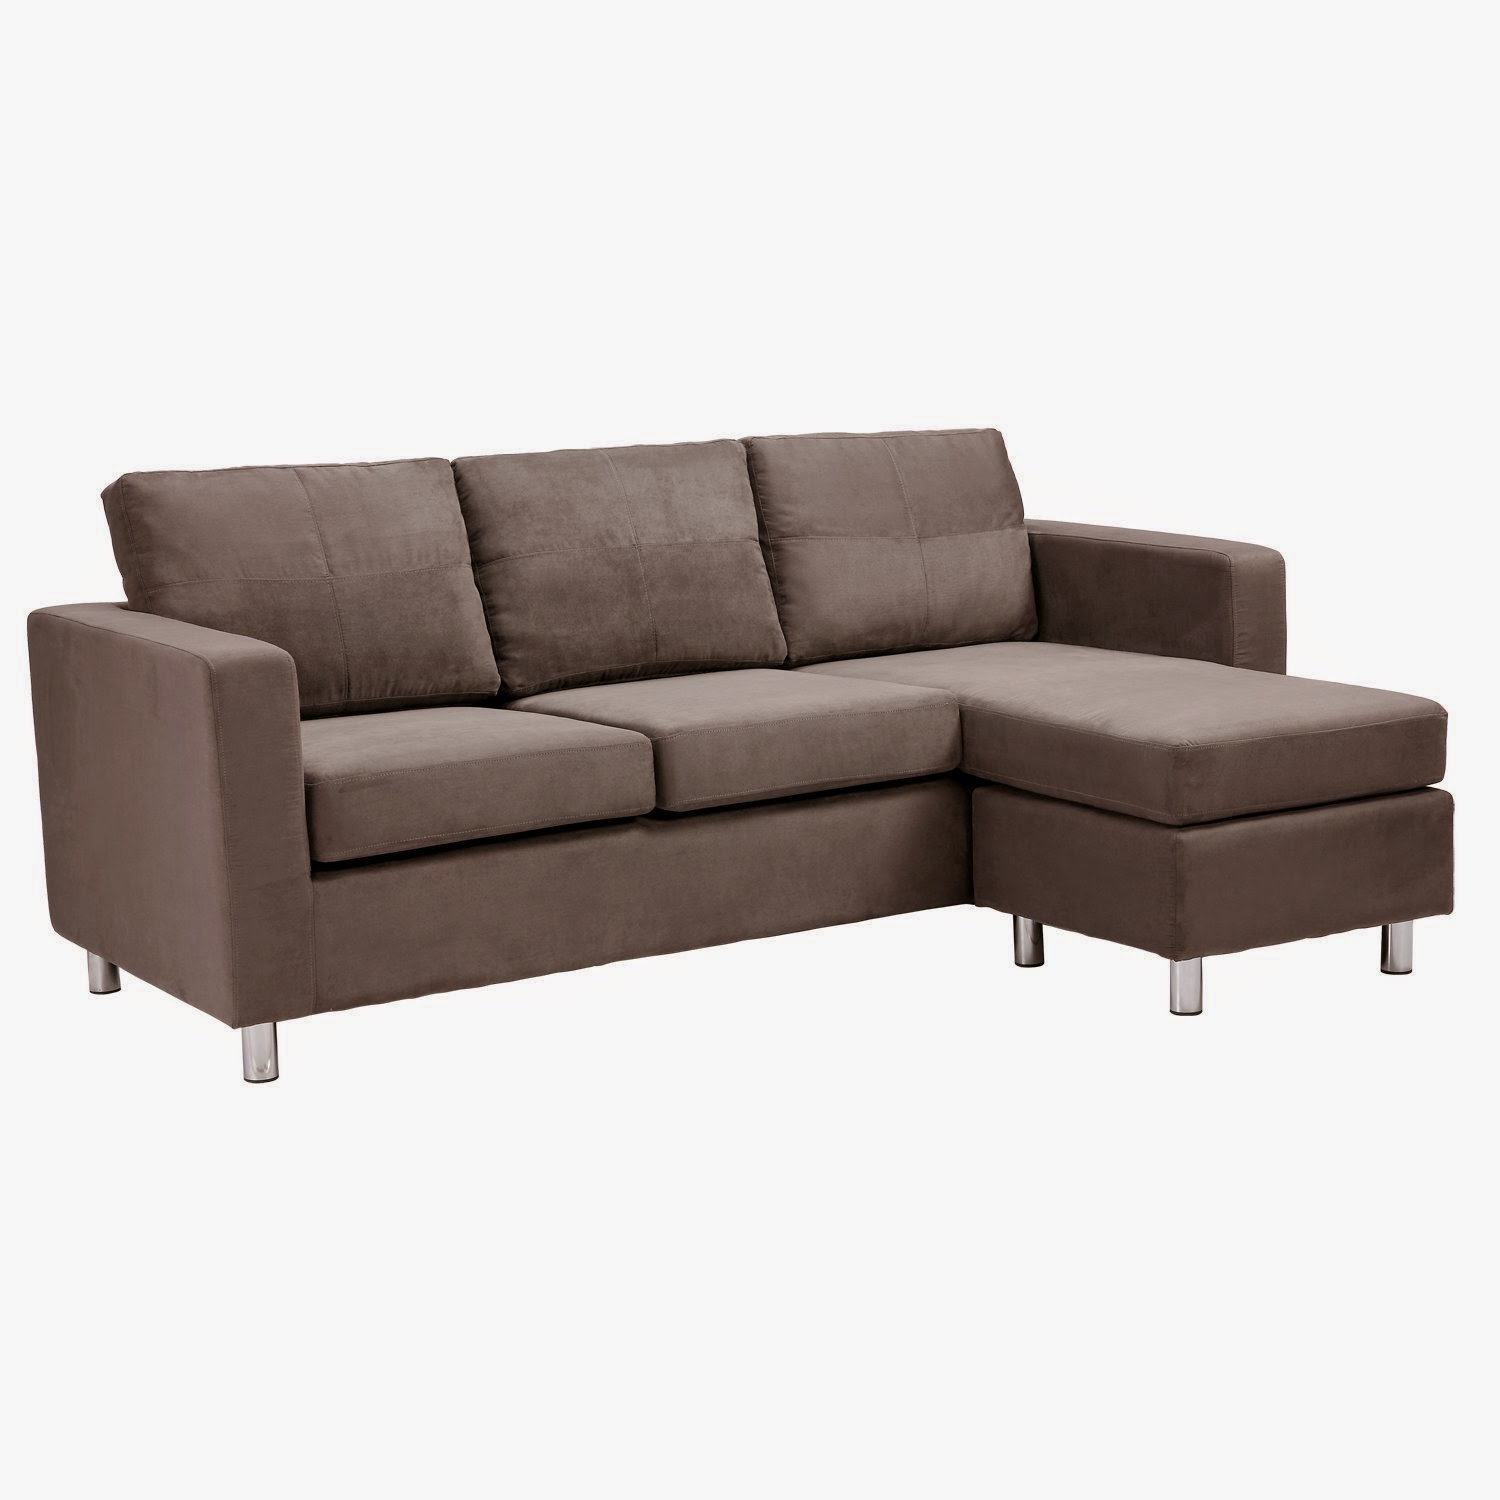 Dorel Asia Microfiber Sectional Sofa, Grey